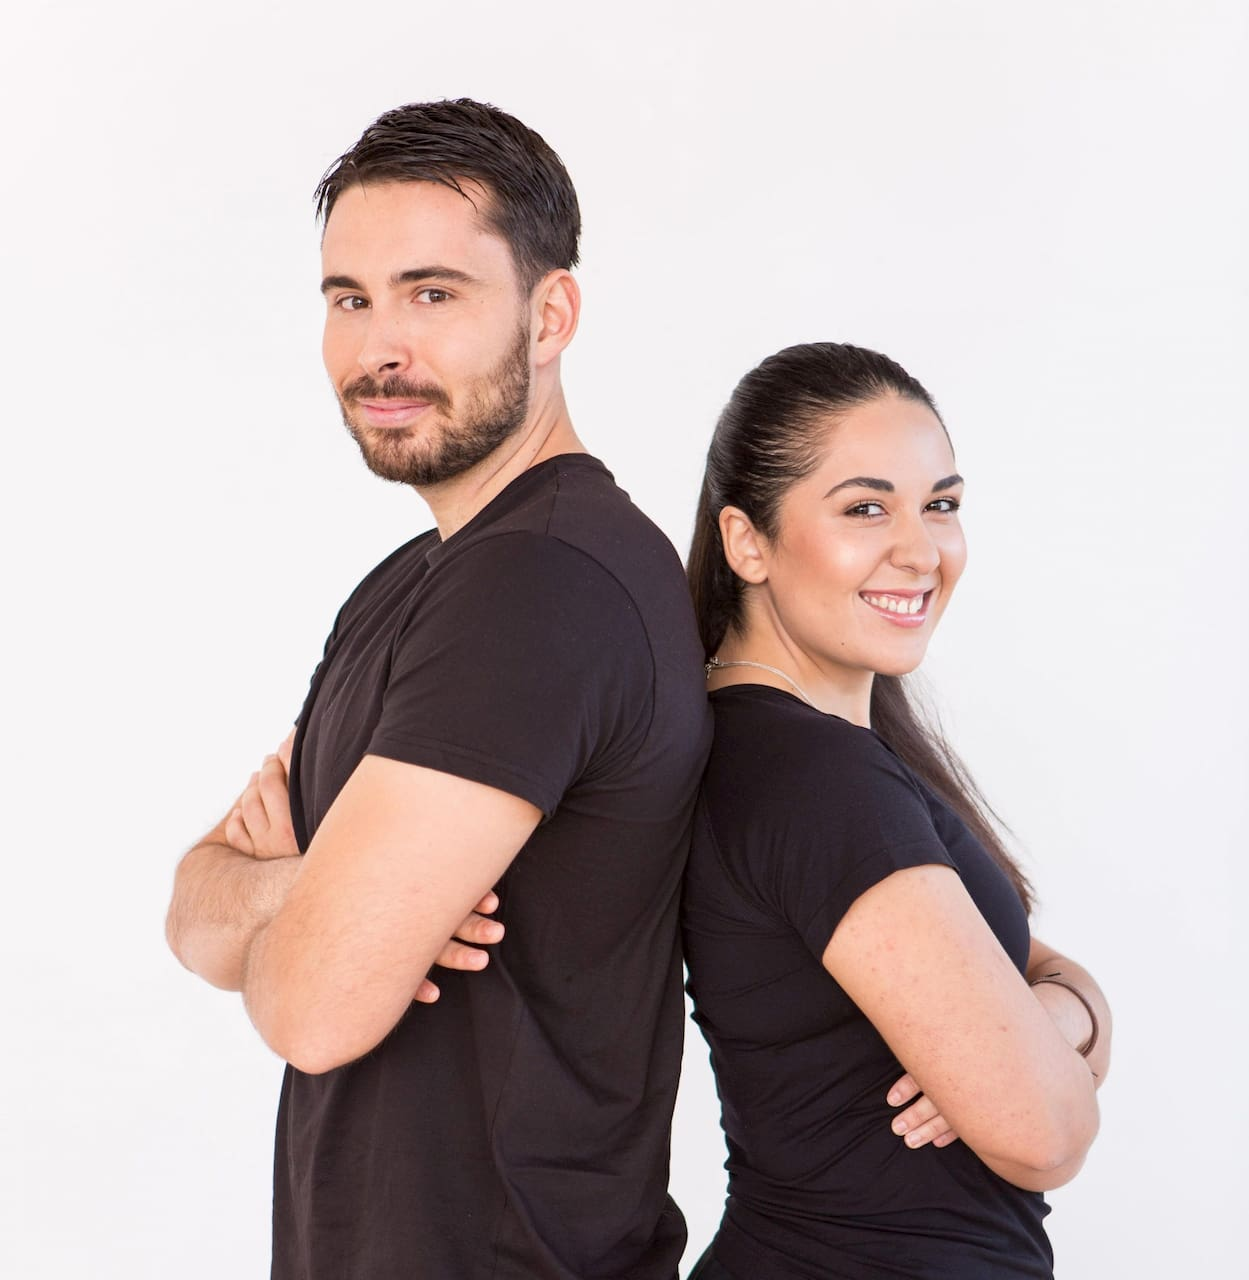 Your personal trainers